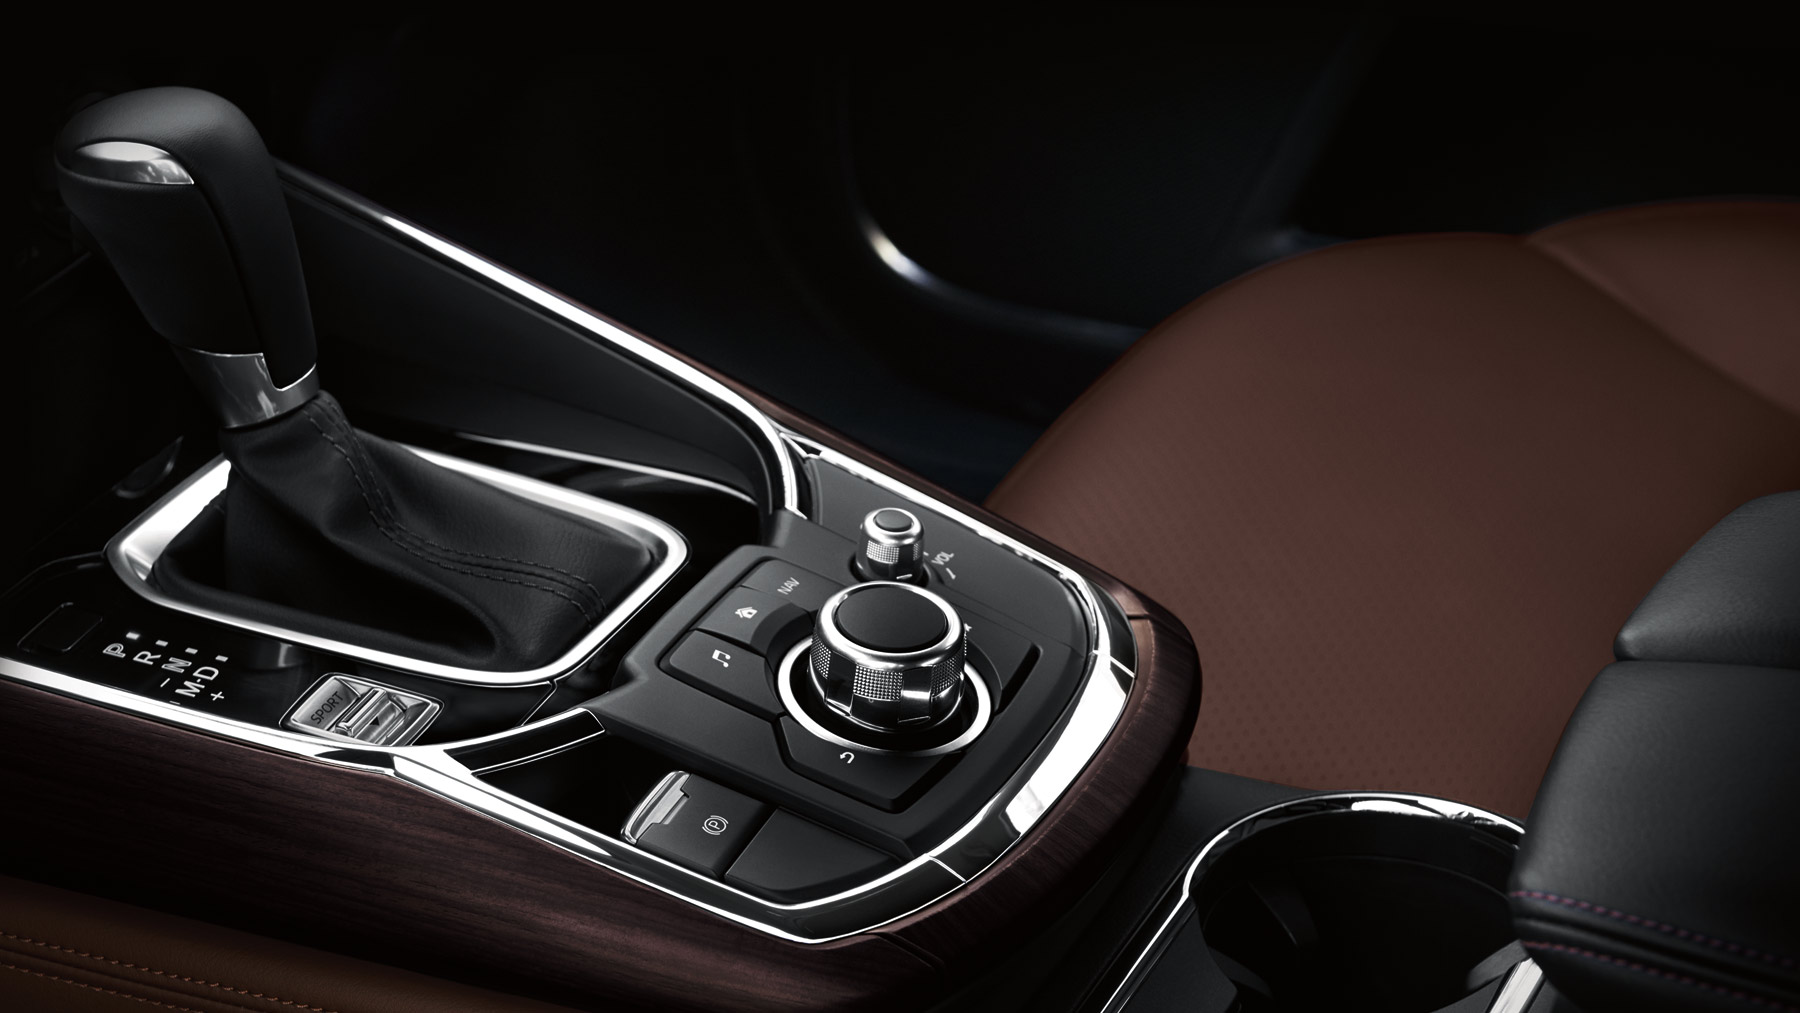 Advanced Controls in the Mazda CX-9